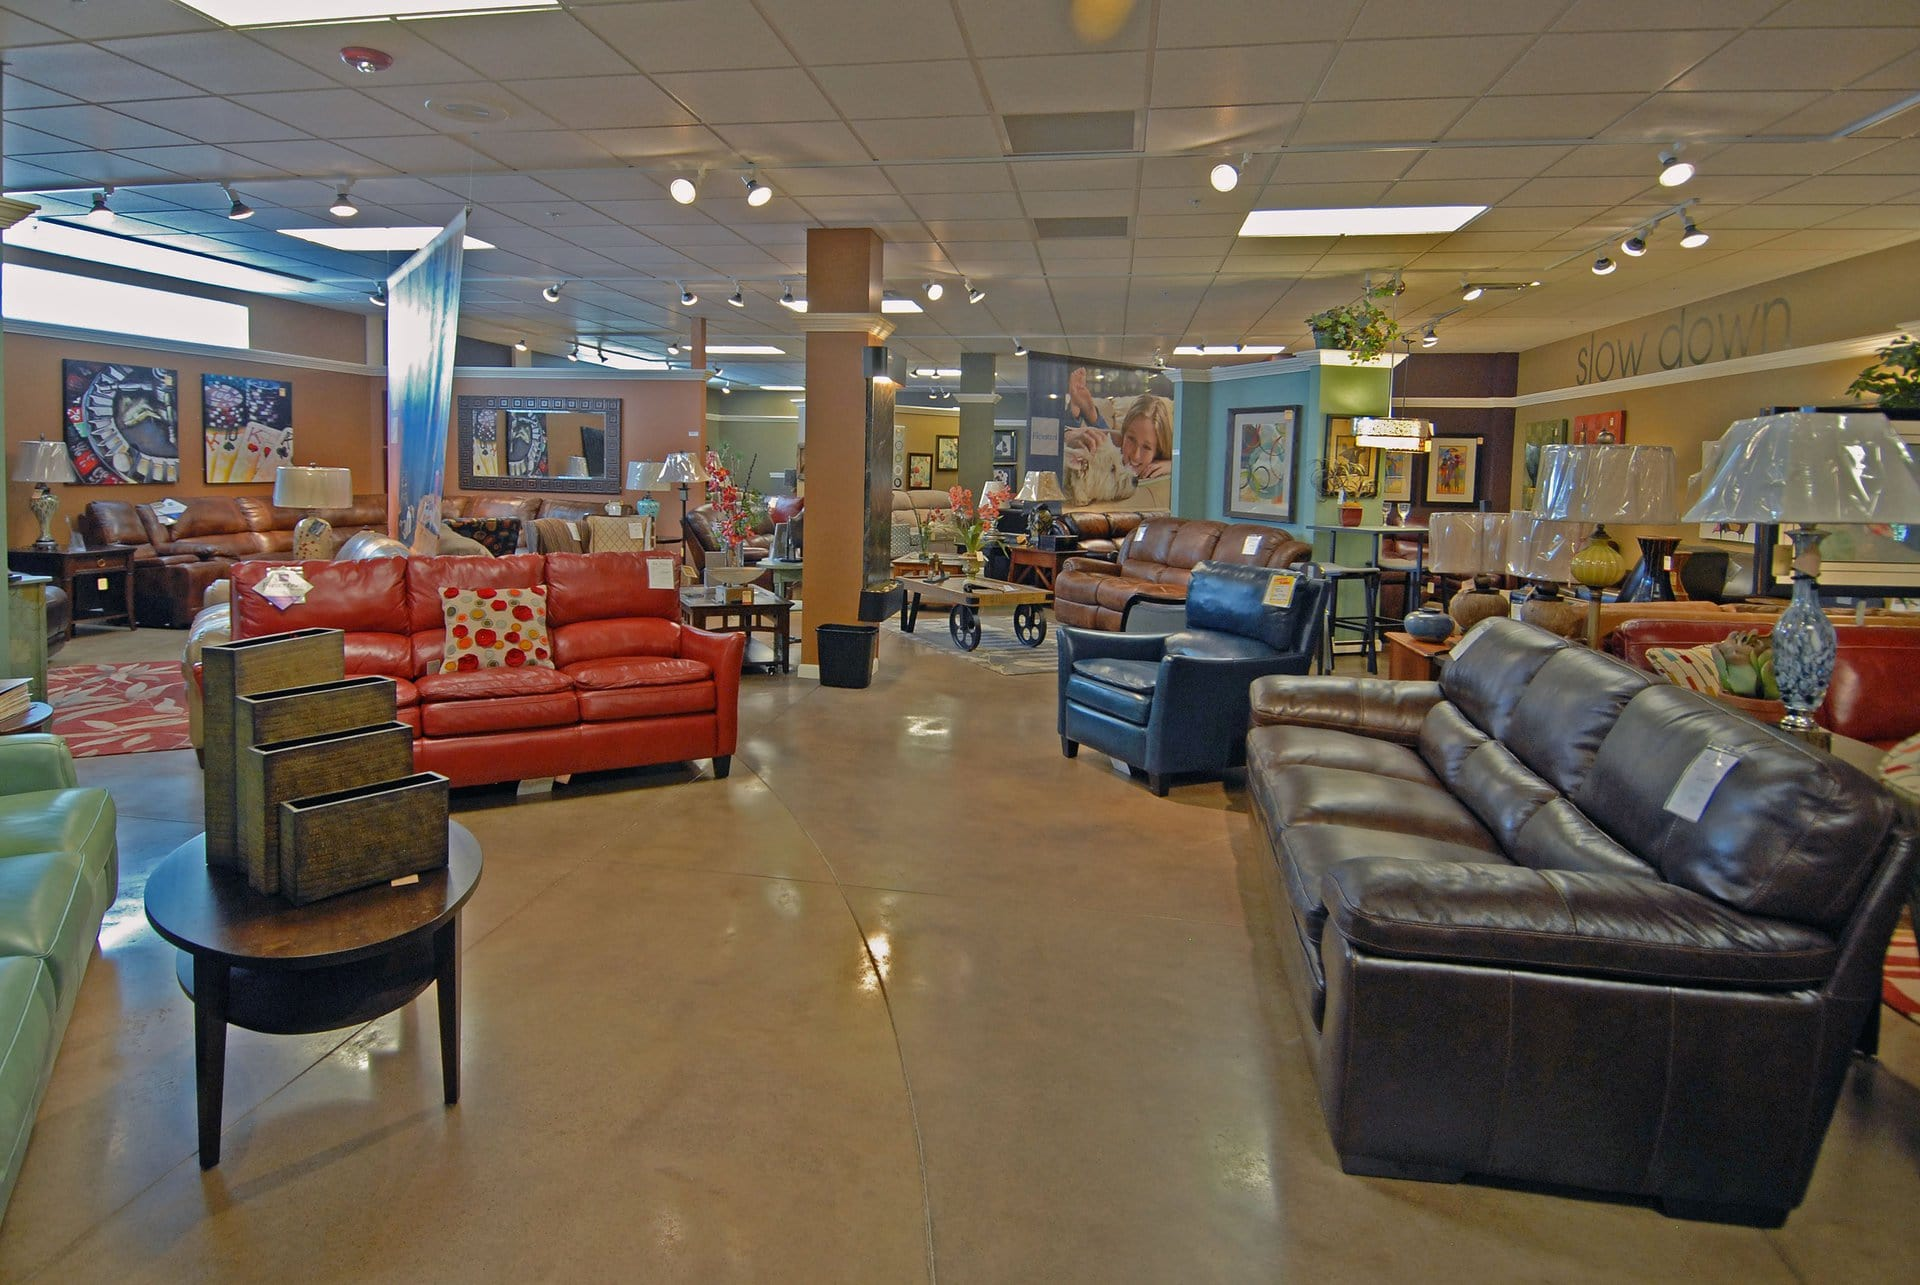 Mattress warehouse north olmsted furniture stores in for Fish furniture outlet